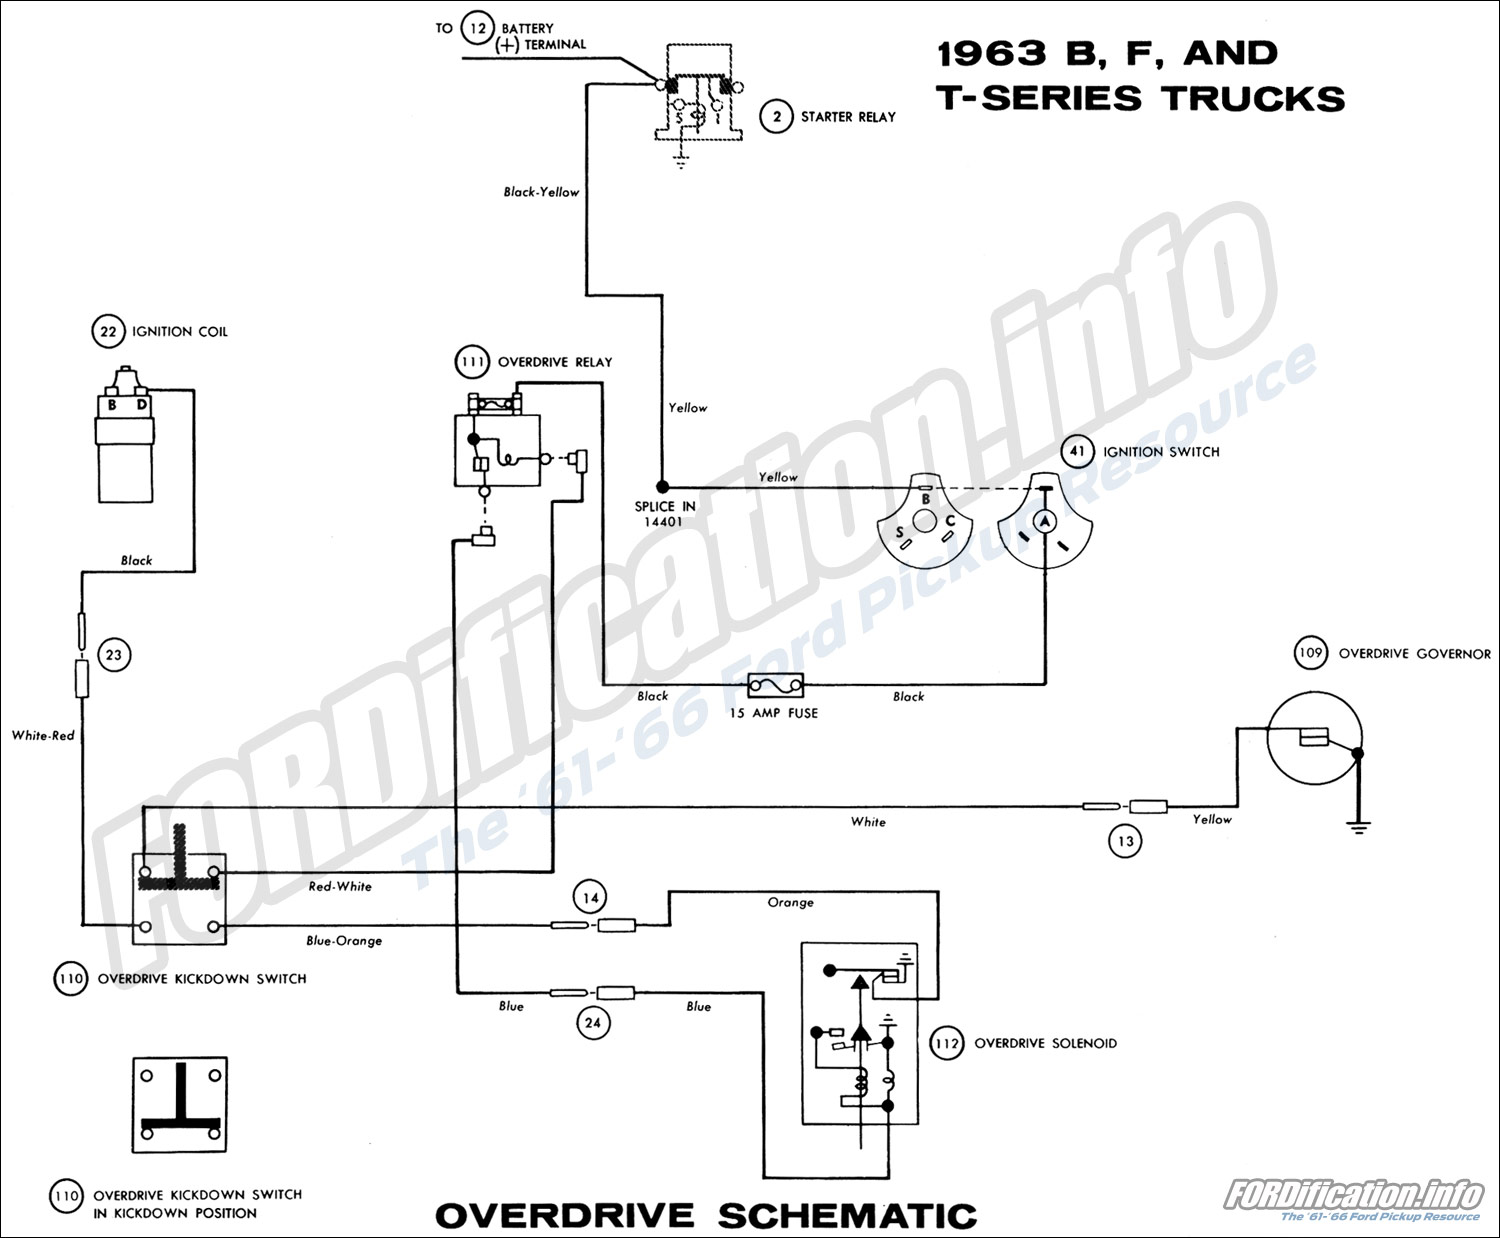 1963 ford truck wiring diagrams fordification info the 61 66 rh  fordification info 1950 ford overdrive wiring Early Ford Transmission  Overdrive